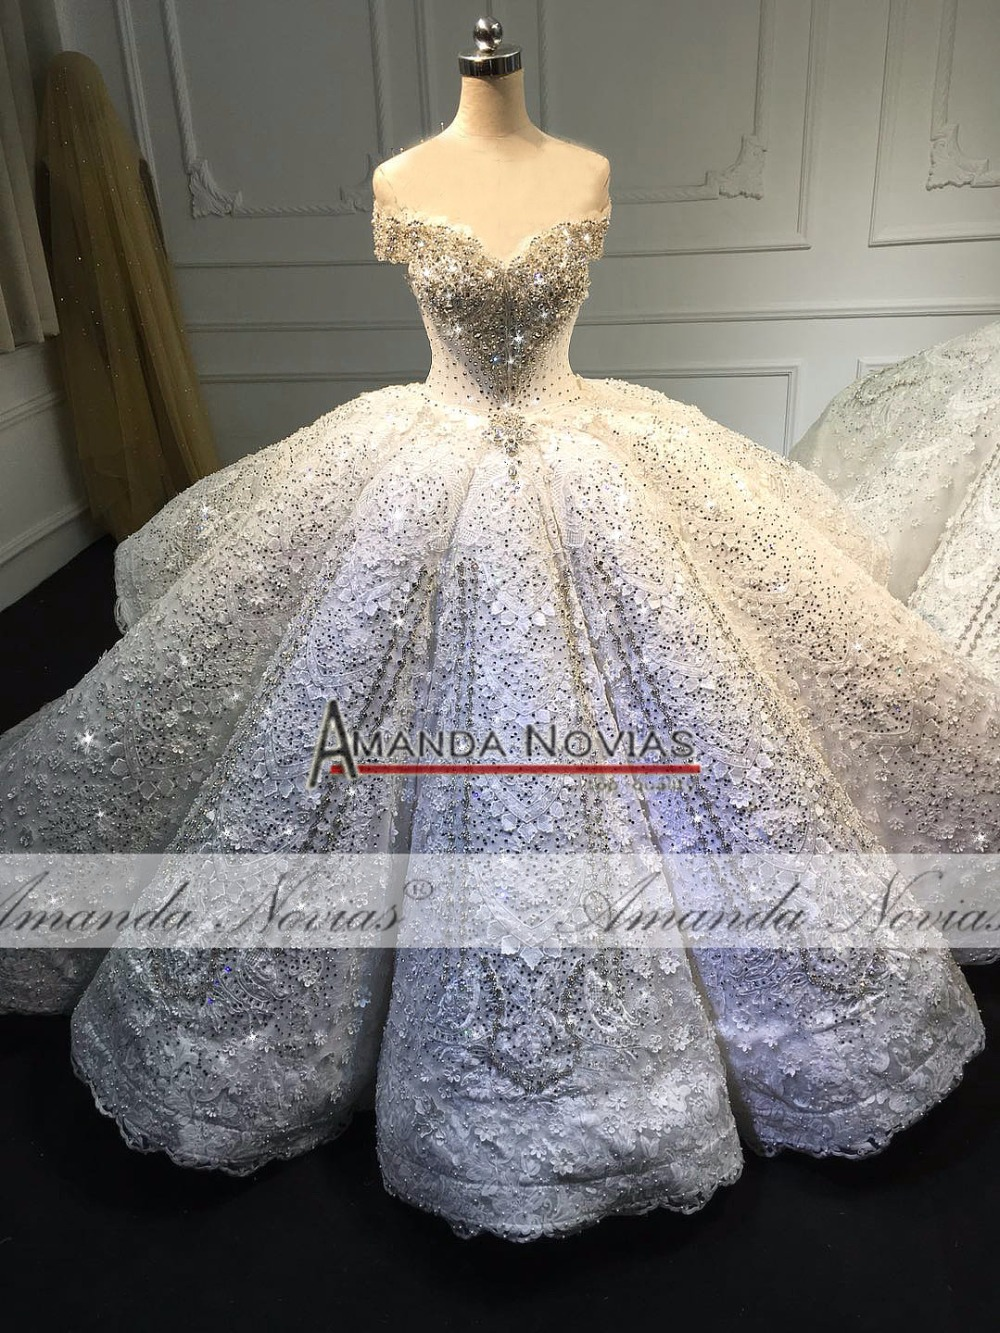 Dubai Luxury Wedding Dress 2019 Amanda Novias Real Work 100% top quality wedding gown